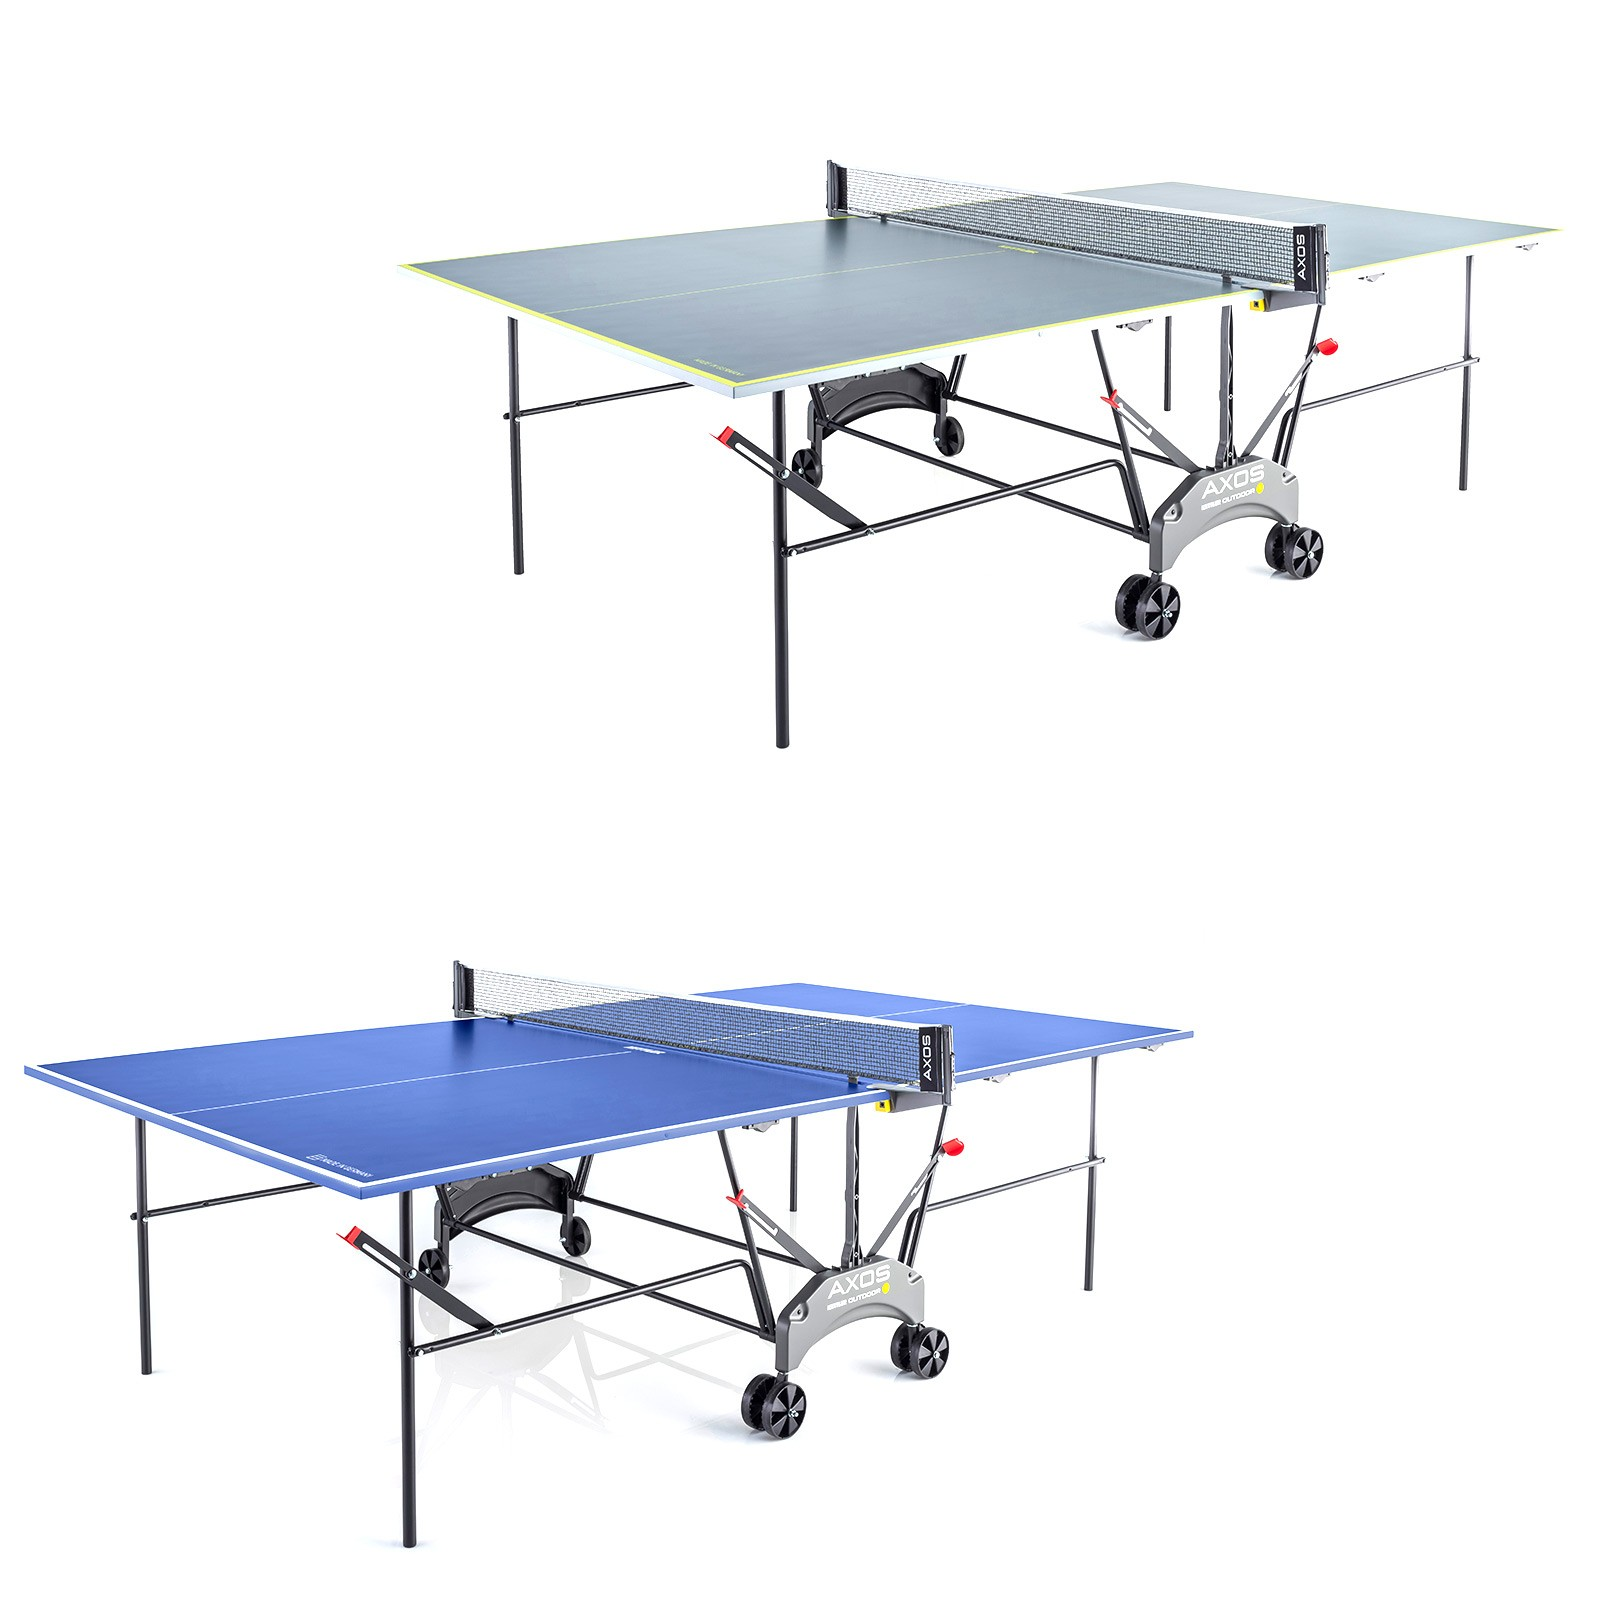 16c43b1f5 Product picture. Loading zoom. kettler. Kettler outdoor table tennis table  Axos 1